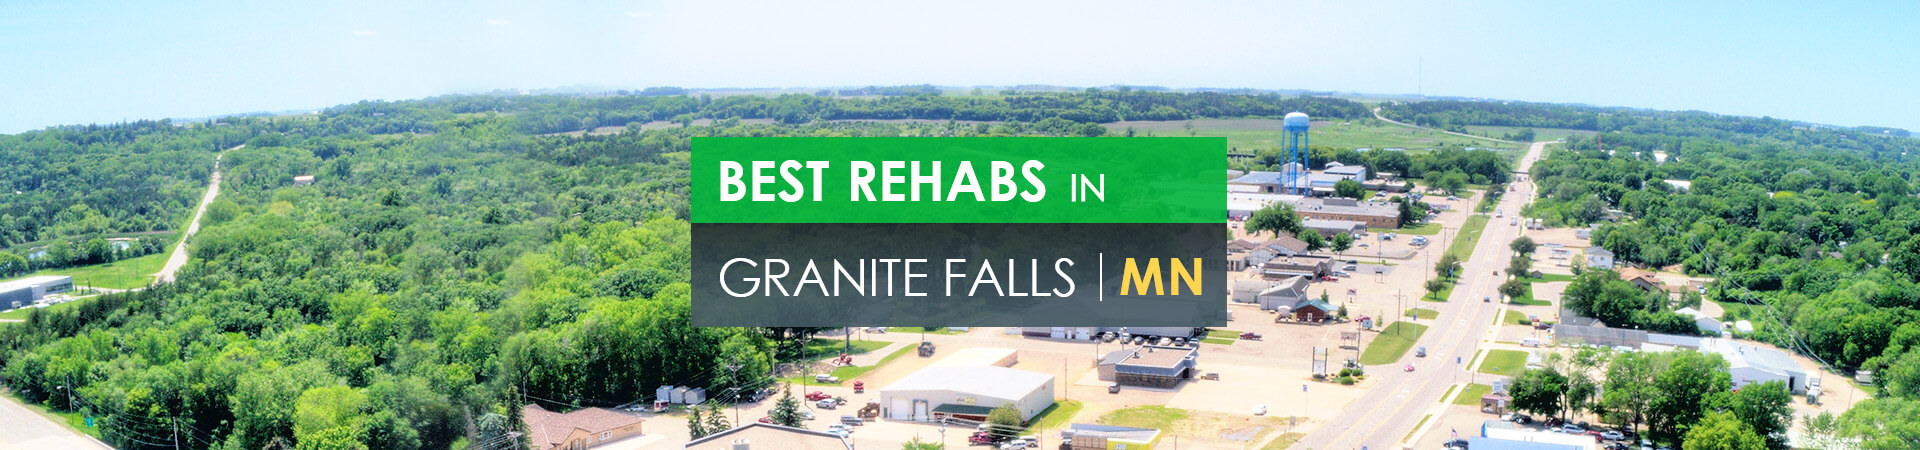 Best rehabs in Granite Falls, MN